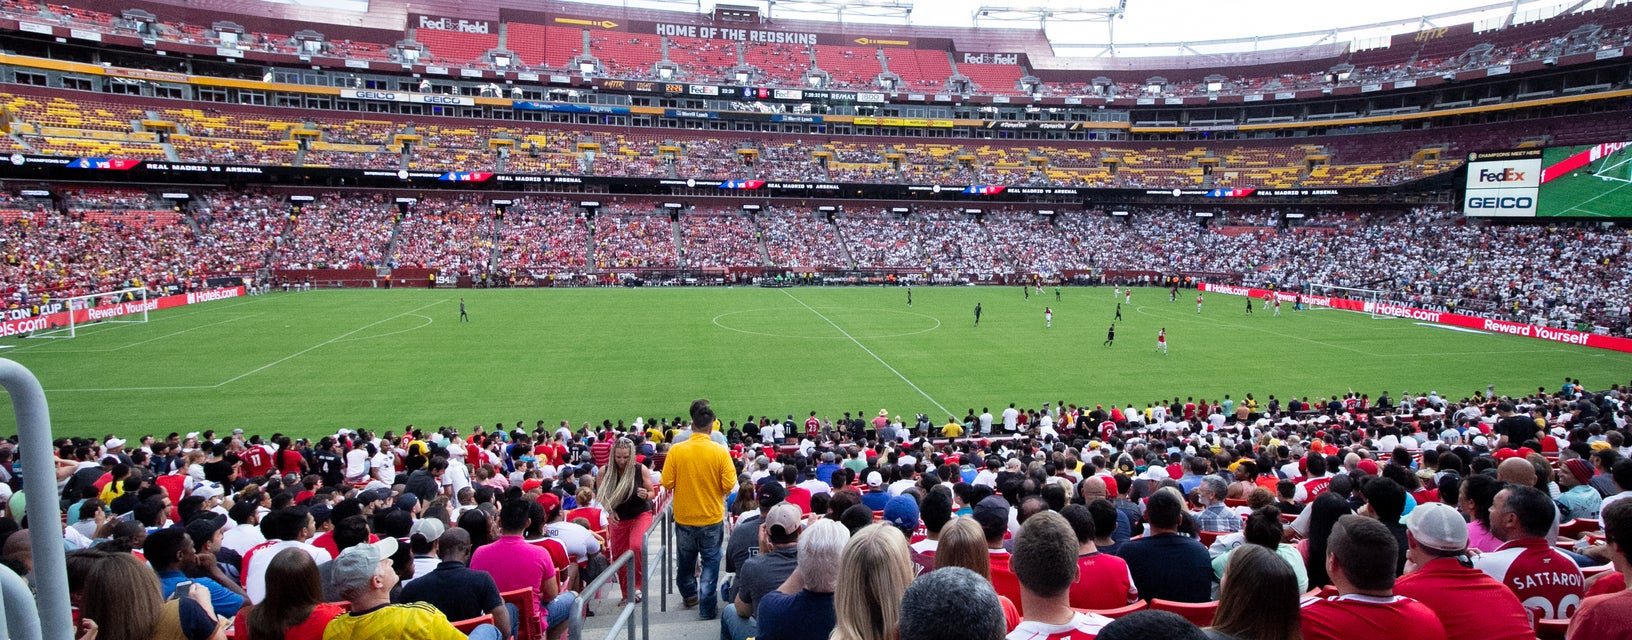 Seat view from Lower Midfield